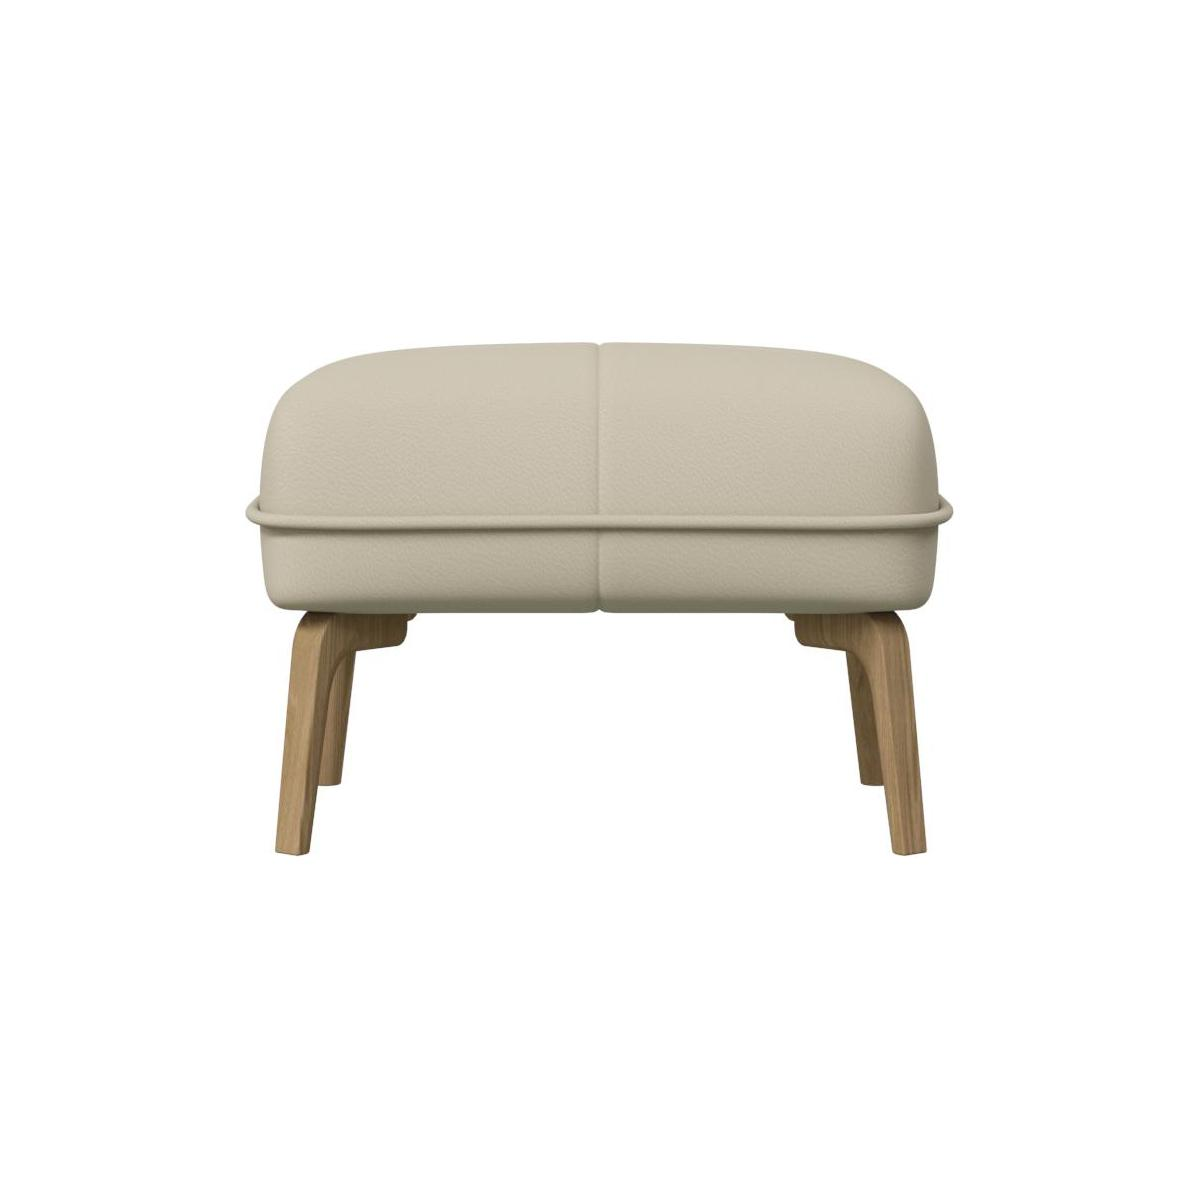 Footstool in Savoy semi-aniline leather, off white and natural oak feet n°3